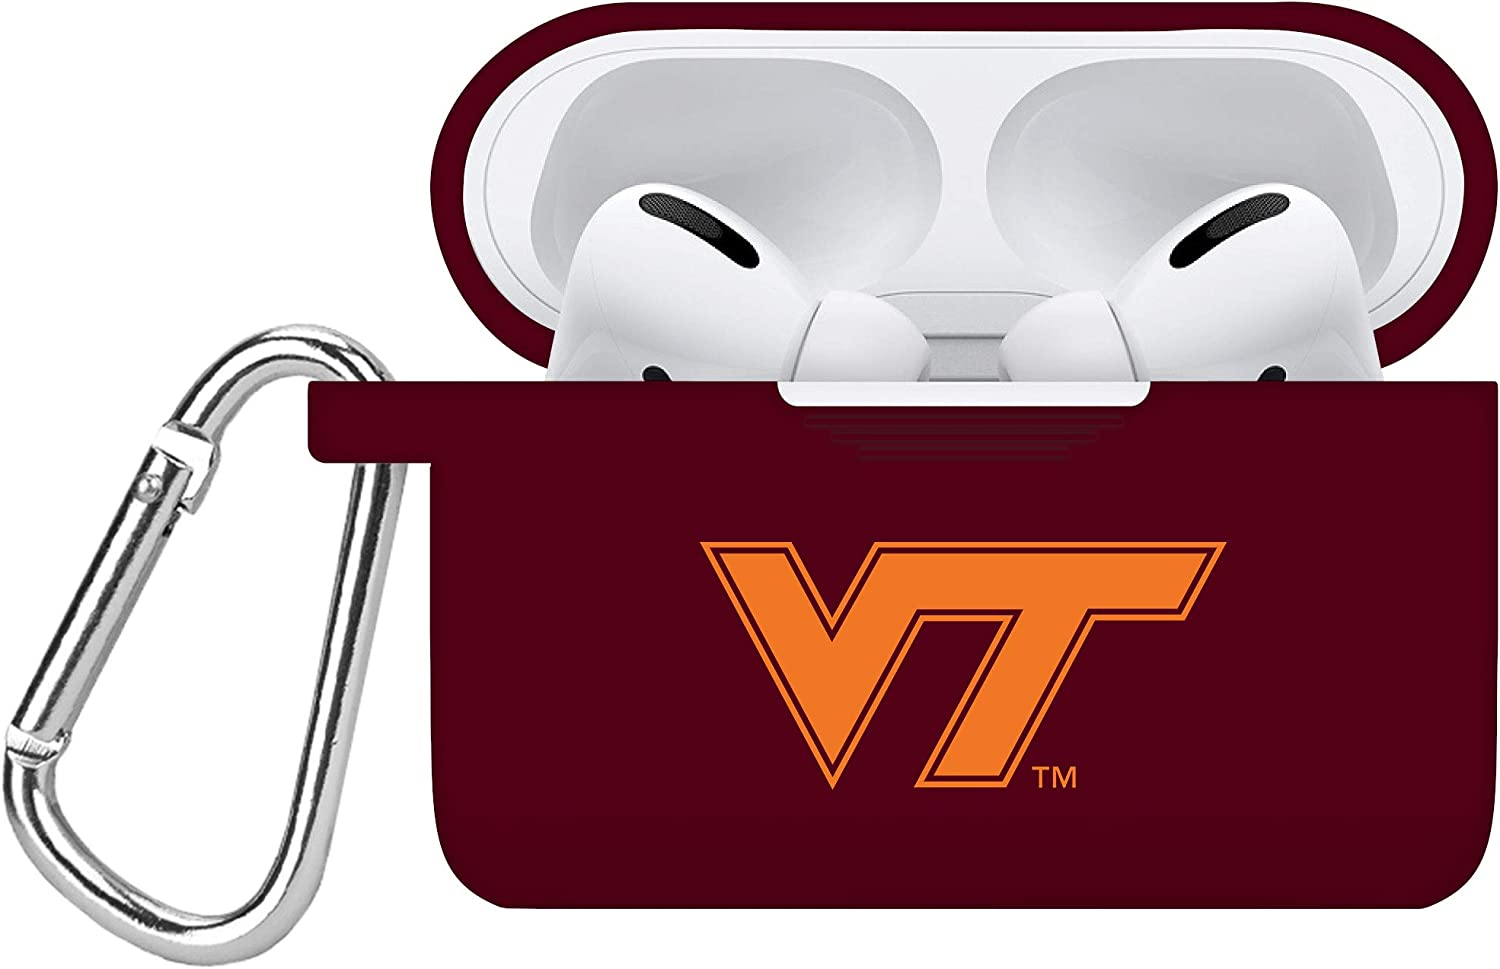 AFFINITY BANDS Virginia Tech Hokies Silicone Case Cover Compatible with Apple AirPods PRO Battery Case - Maroon